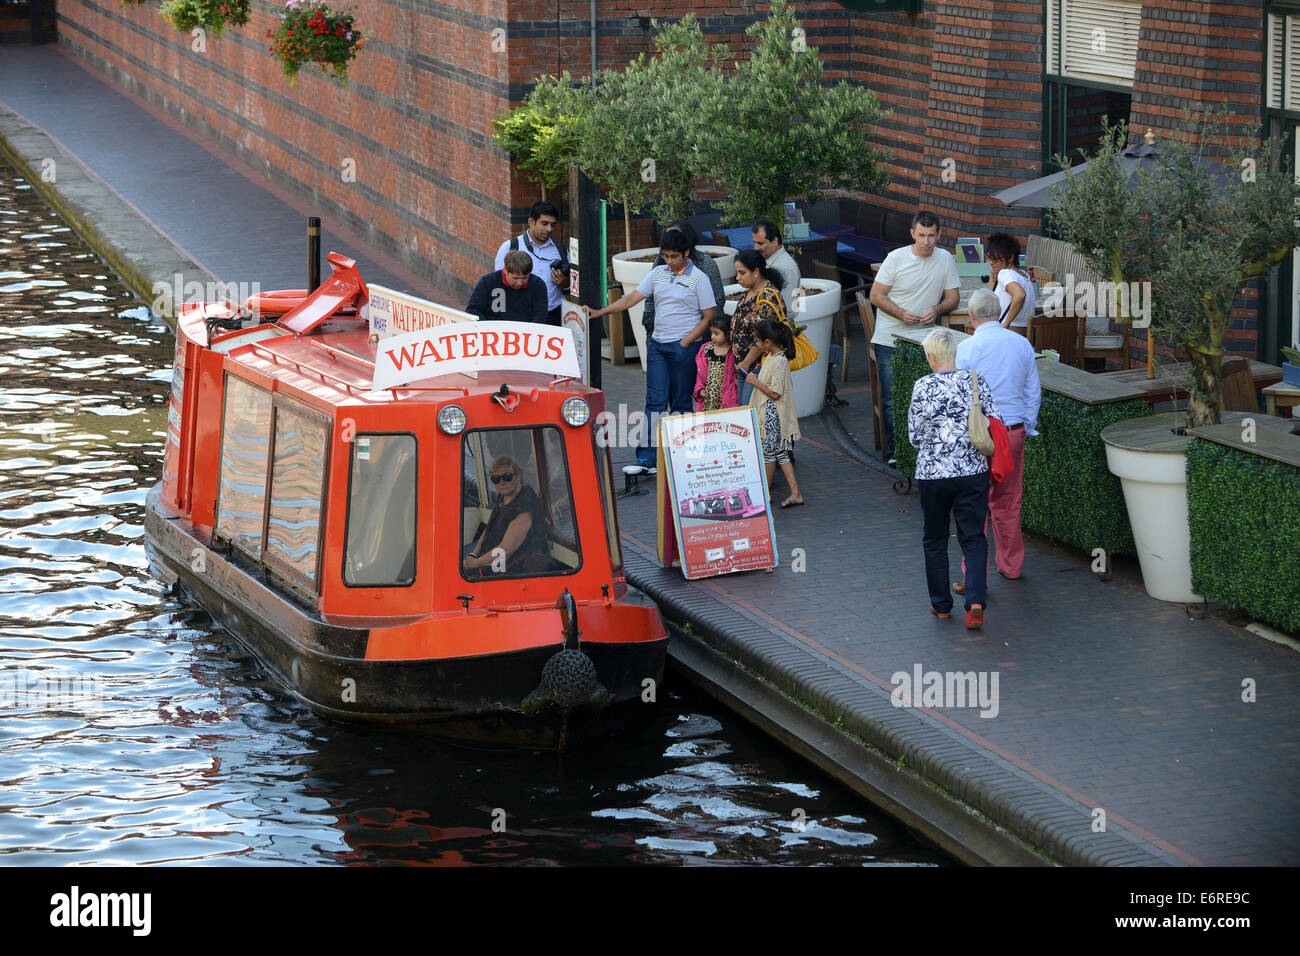 Birmingham canals waterways Waterbus on canal at Brindley Place Uk - Stock Image